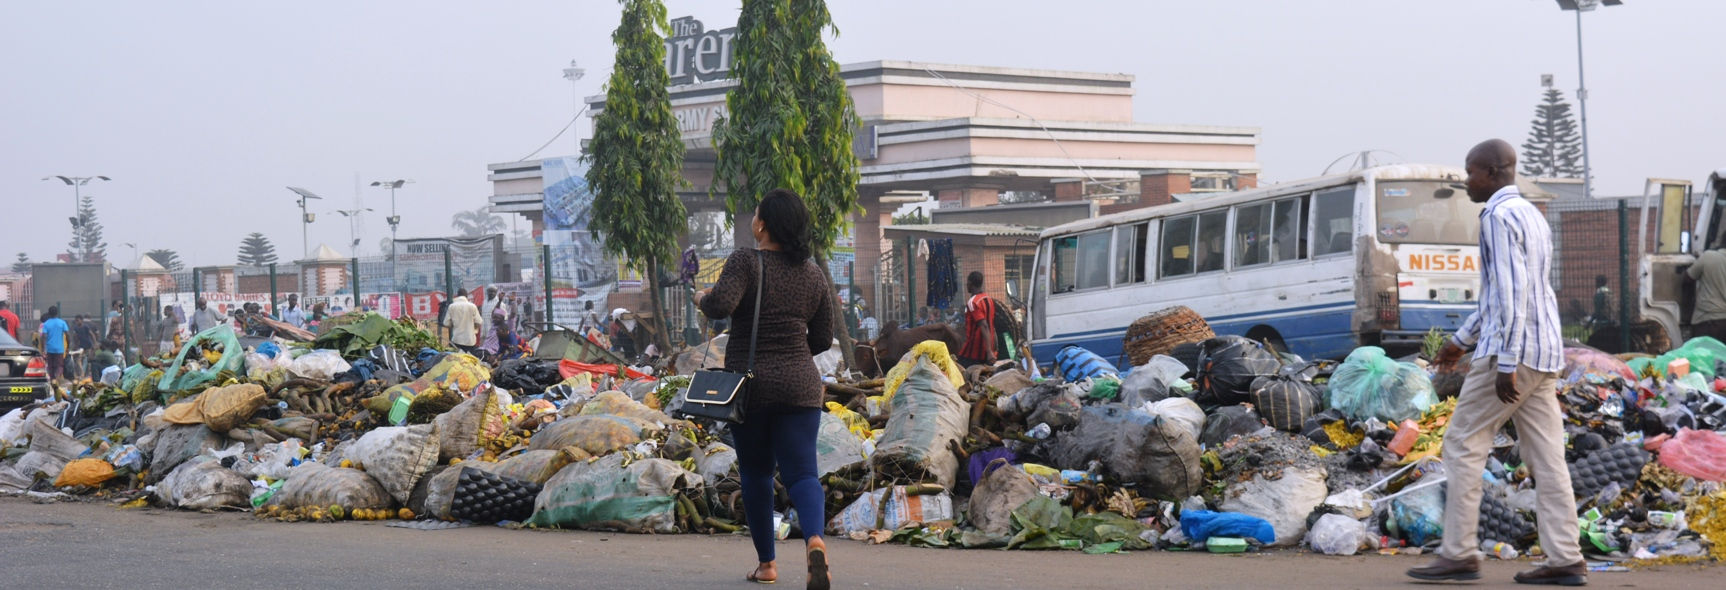 This Stinks! Lagos filthy street in photo